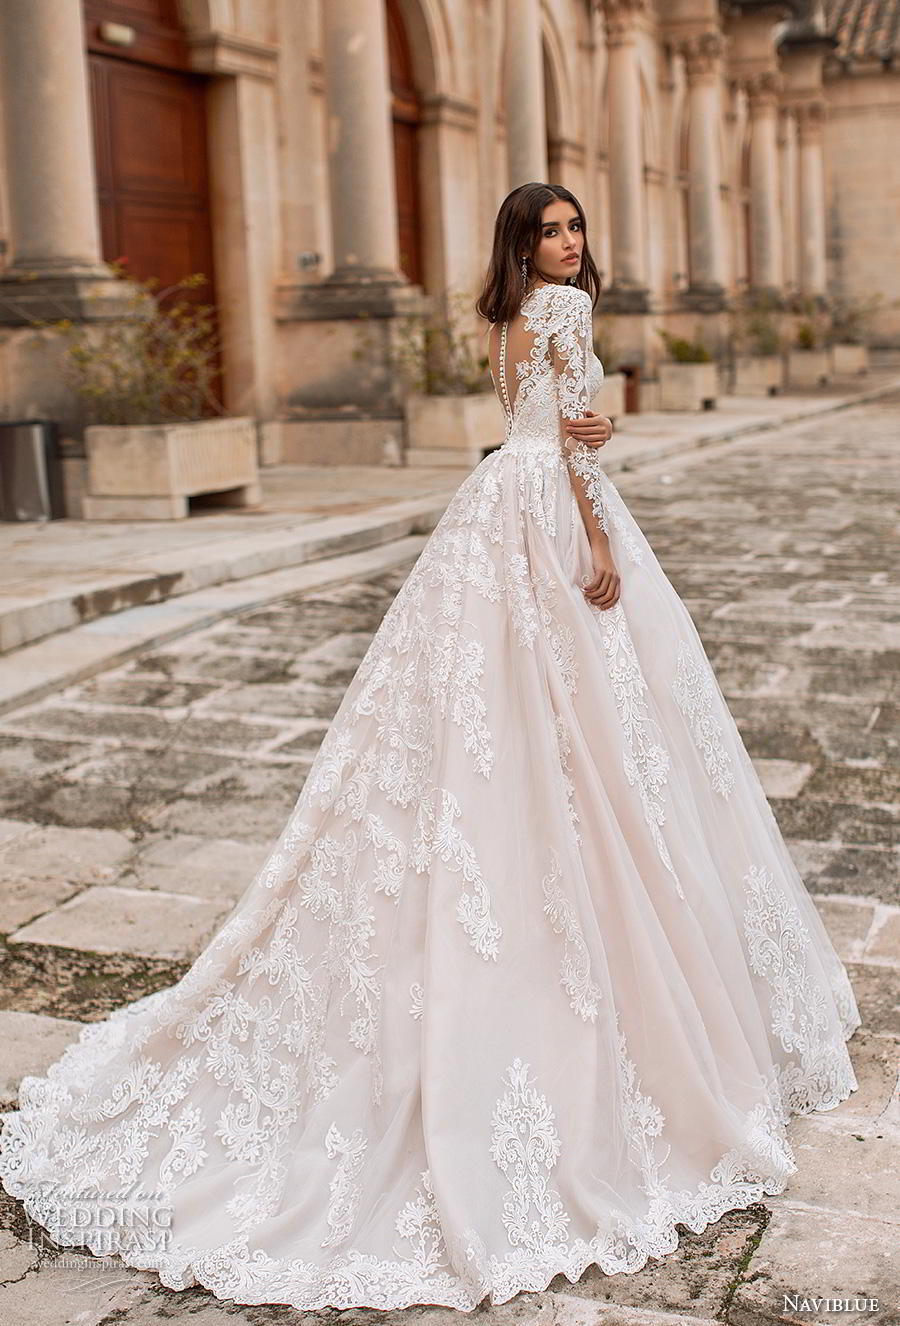 naviblue 2019 bridal long sleeves deep plunging v neck heavily embellished bodice princess romantic a line wedding dress sheer button back chapel train (7) bv